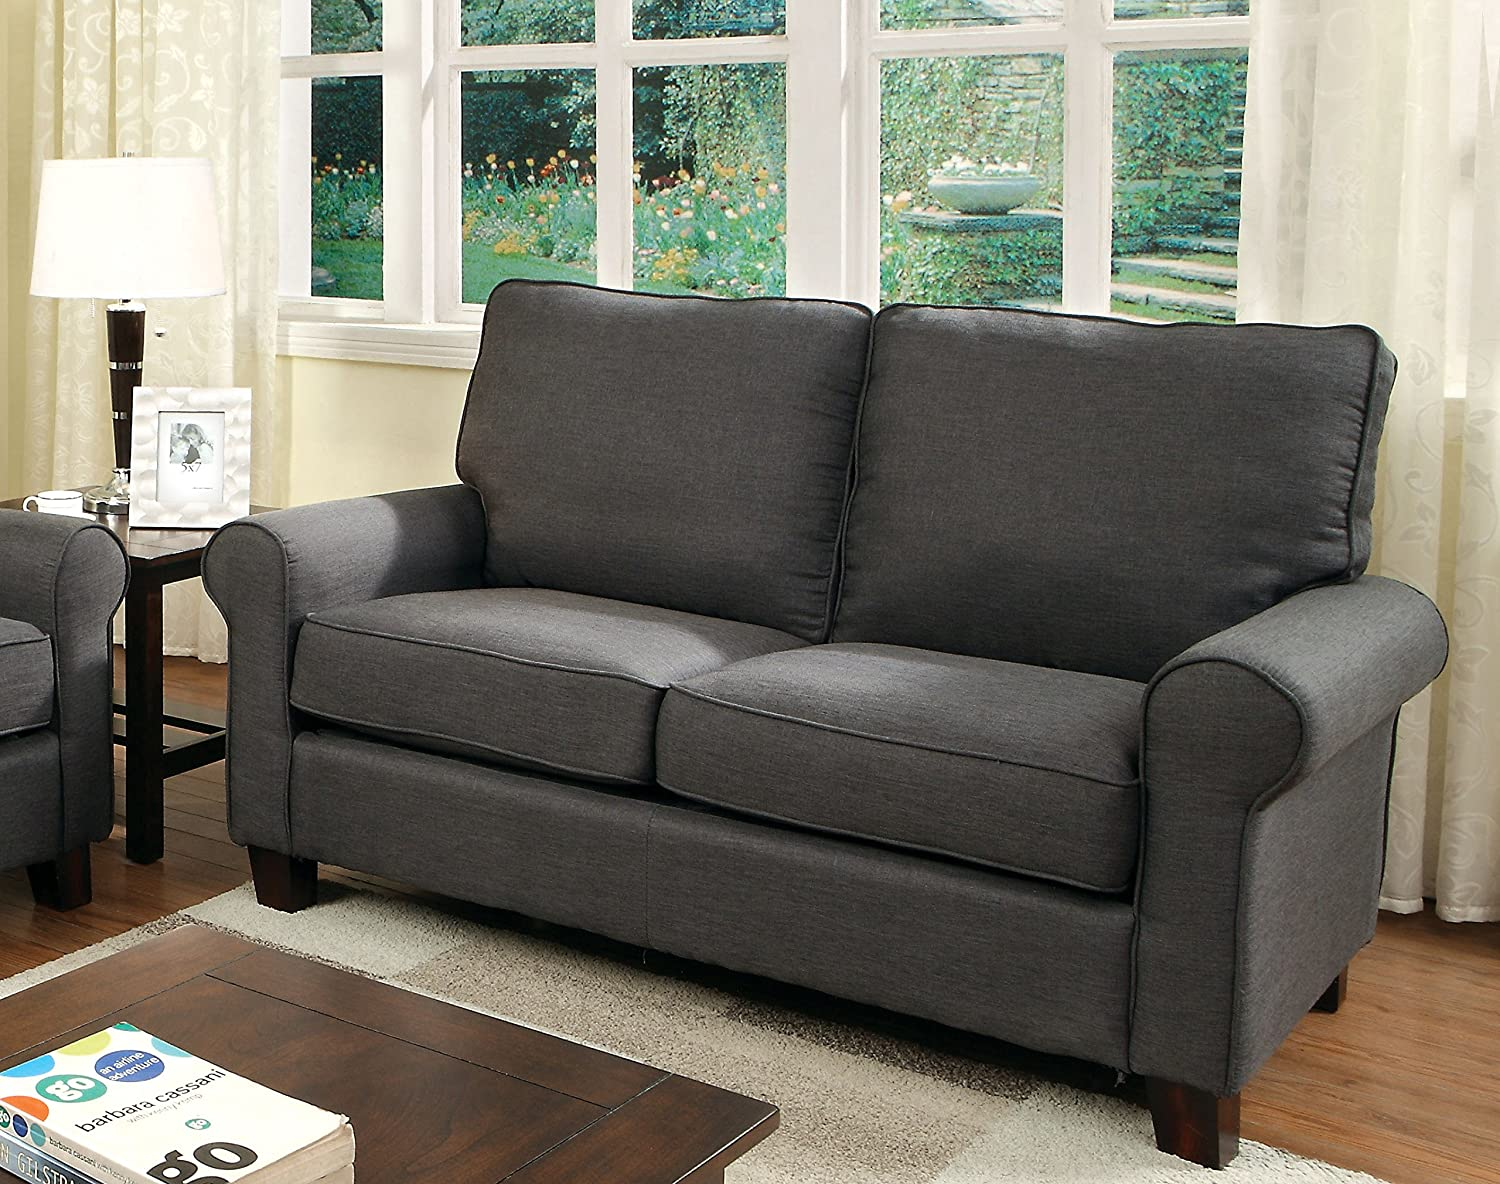 Furniture of America Levine Classic Love Seat - Gray